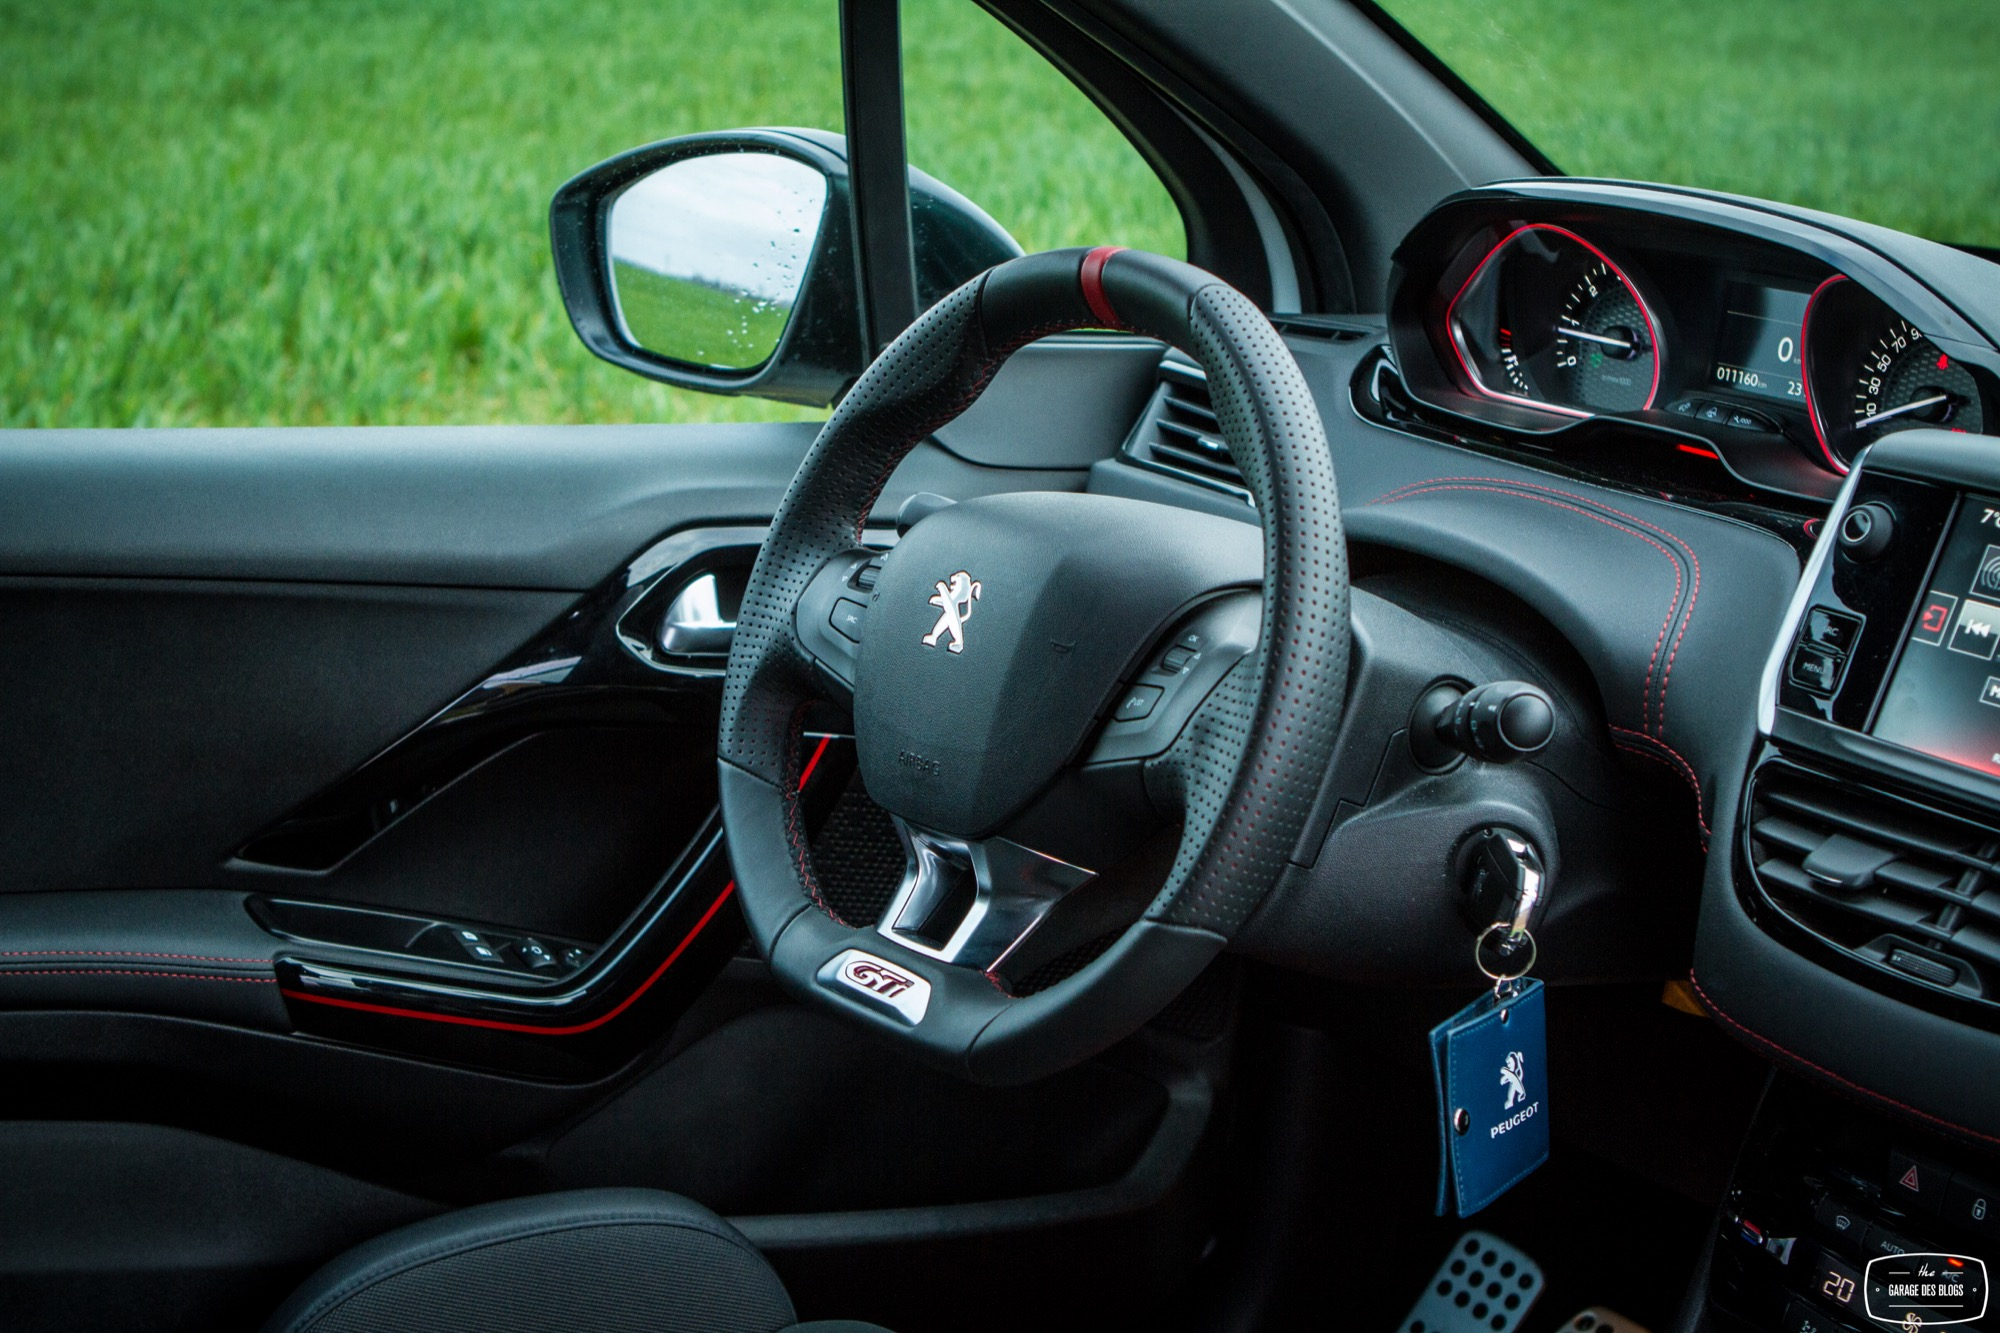 Essai peugeot 208 gti 30th interieur 1 le blog de viinz for Interieur peugeot 208